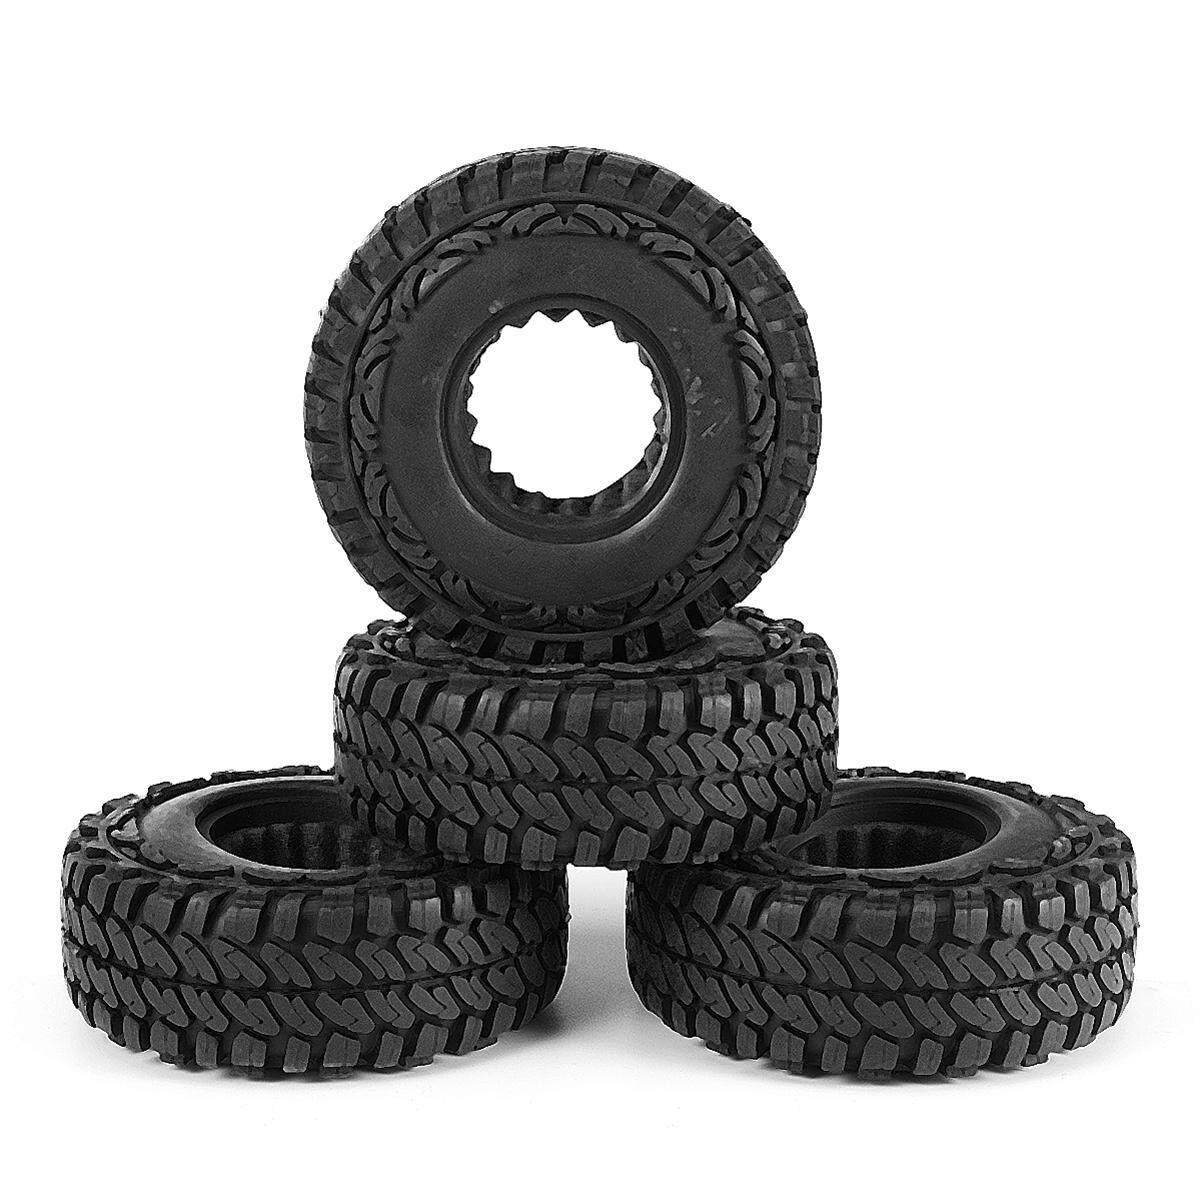 4pcs Rc Car 108mm Tires For 1/10 Rc Crawler 4wd Scx10 Cc01 1.9 Inch Wheels Parts By Autoleader.